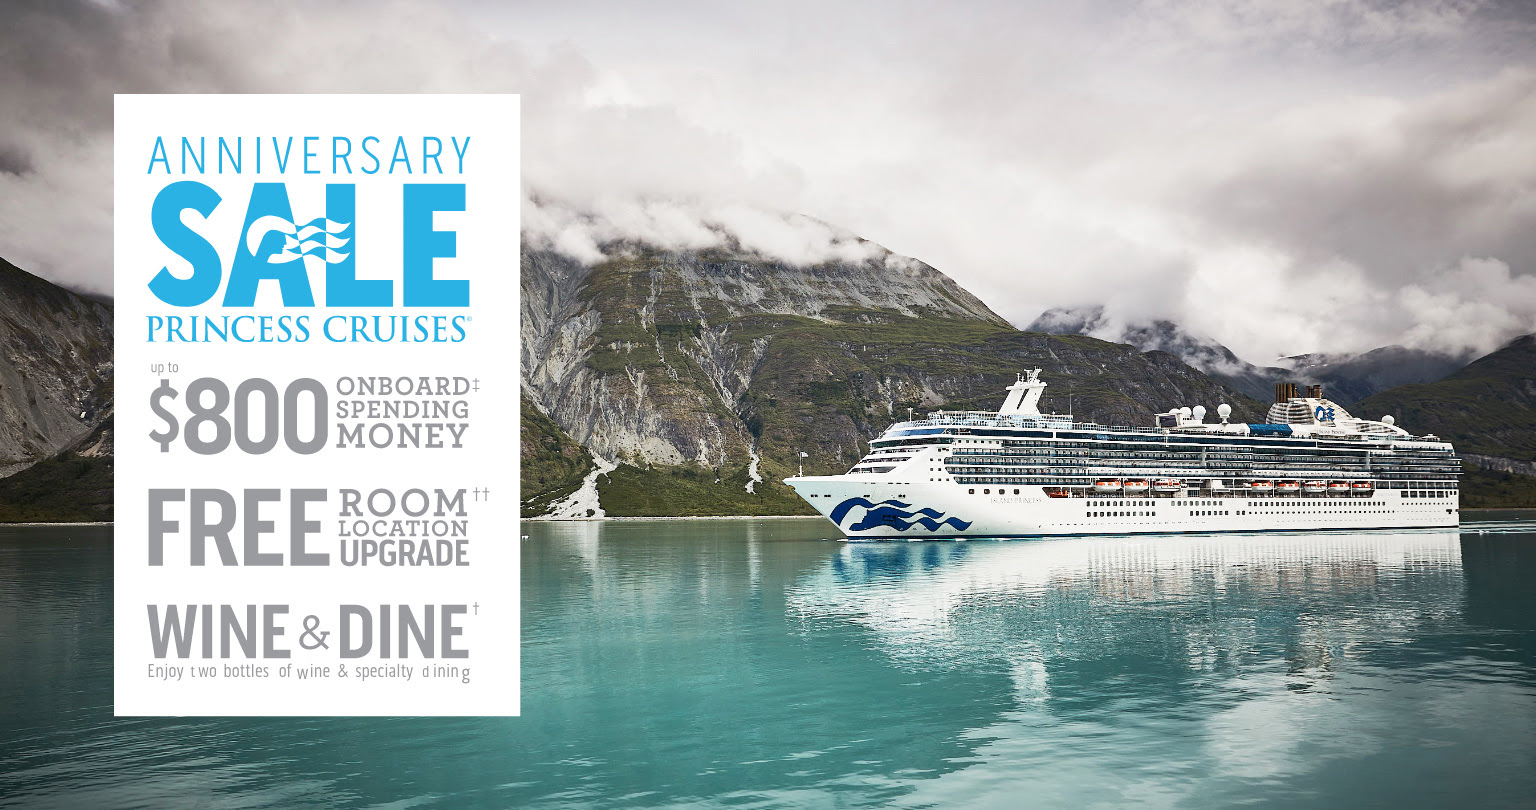 Click here to book Anniversay Sale - up to $800 onboard spending money, free room location upgrade and wine & dine